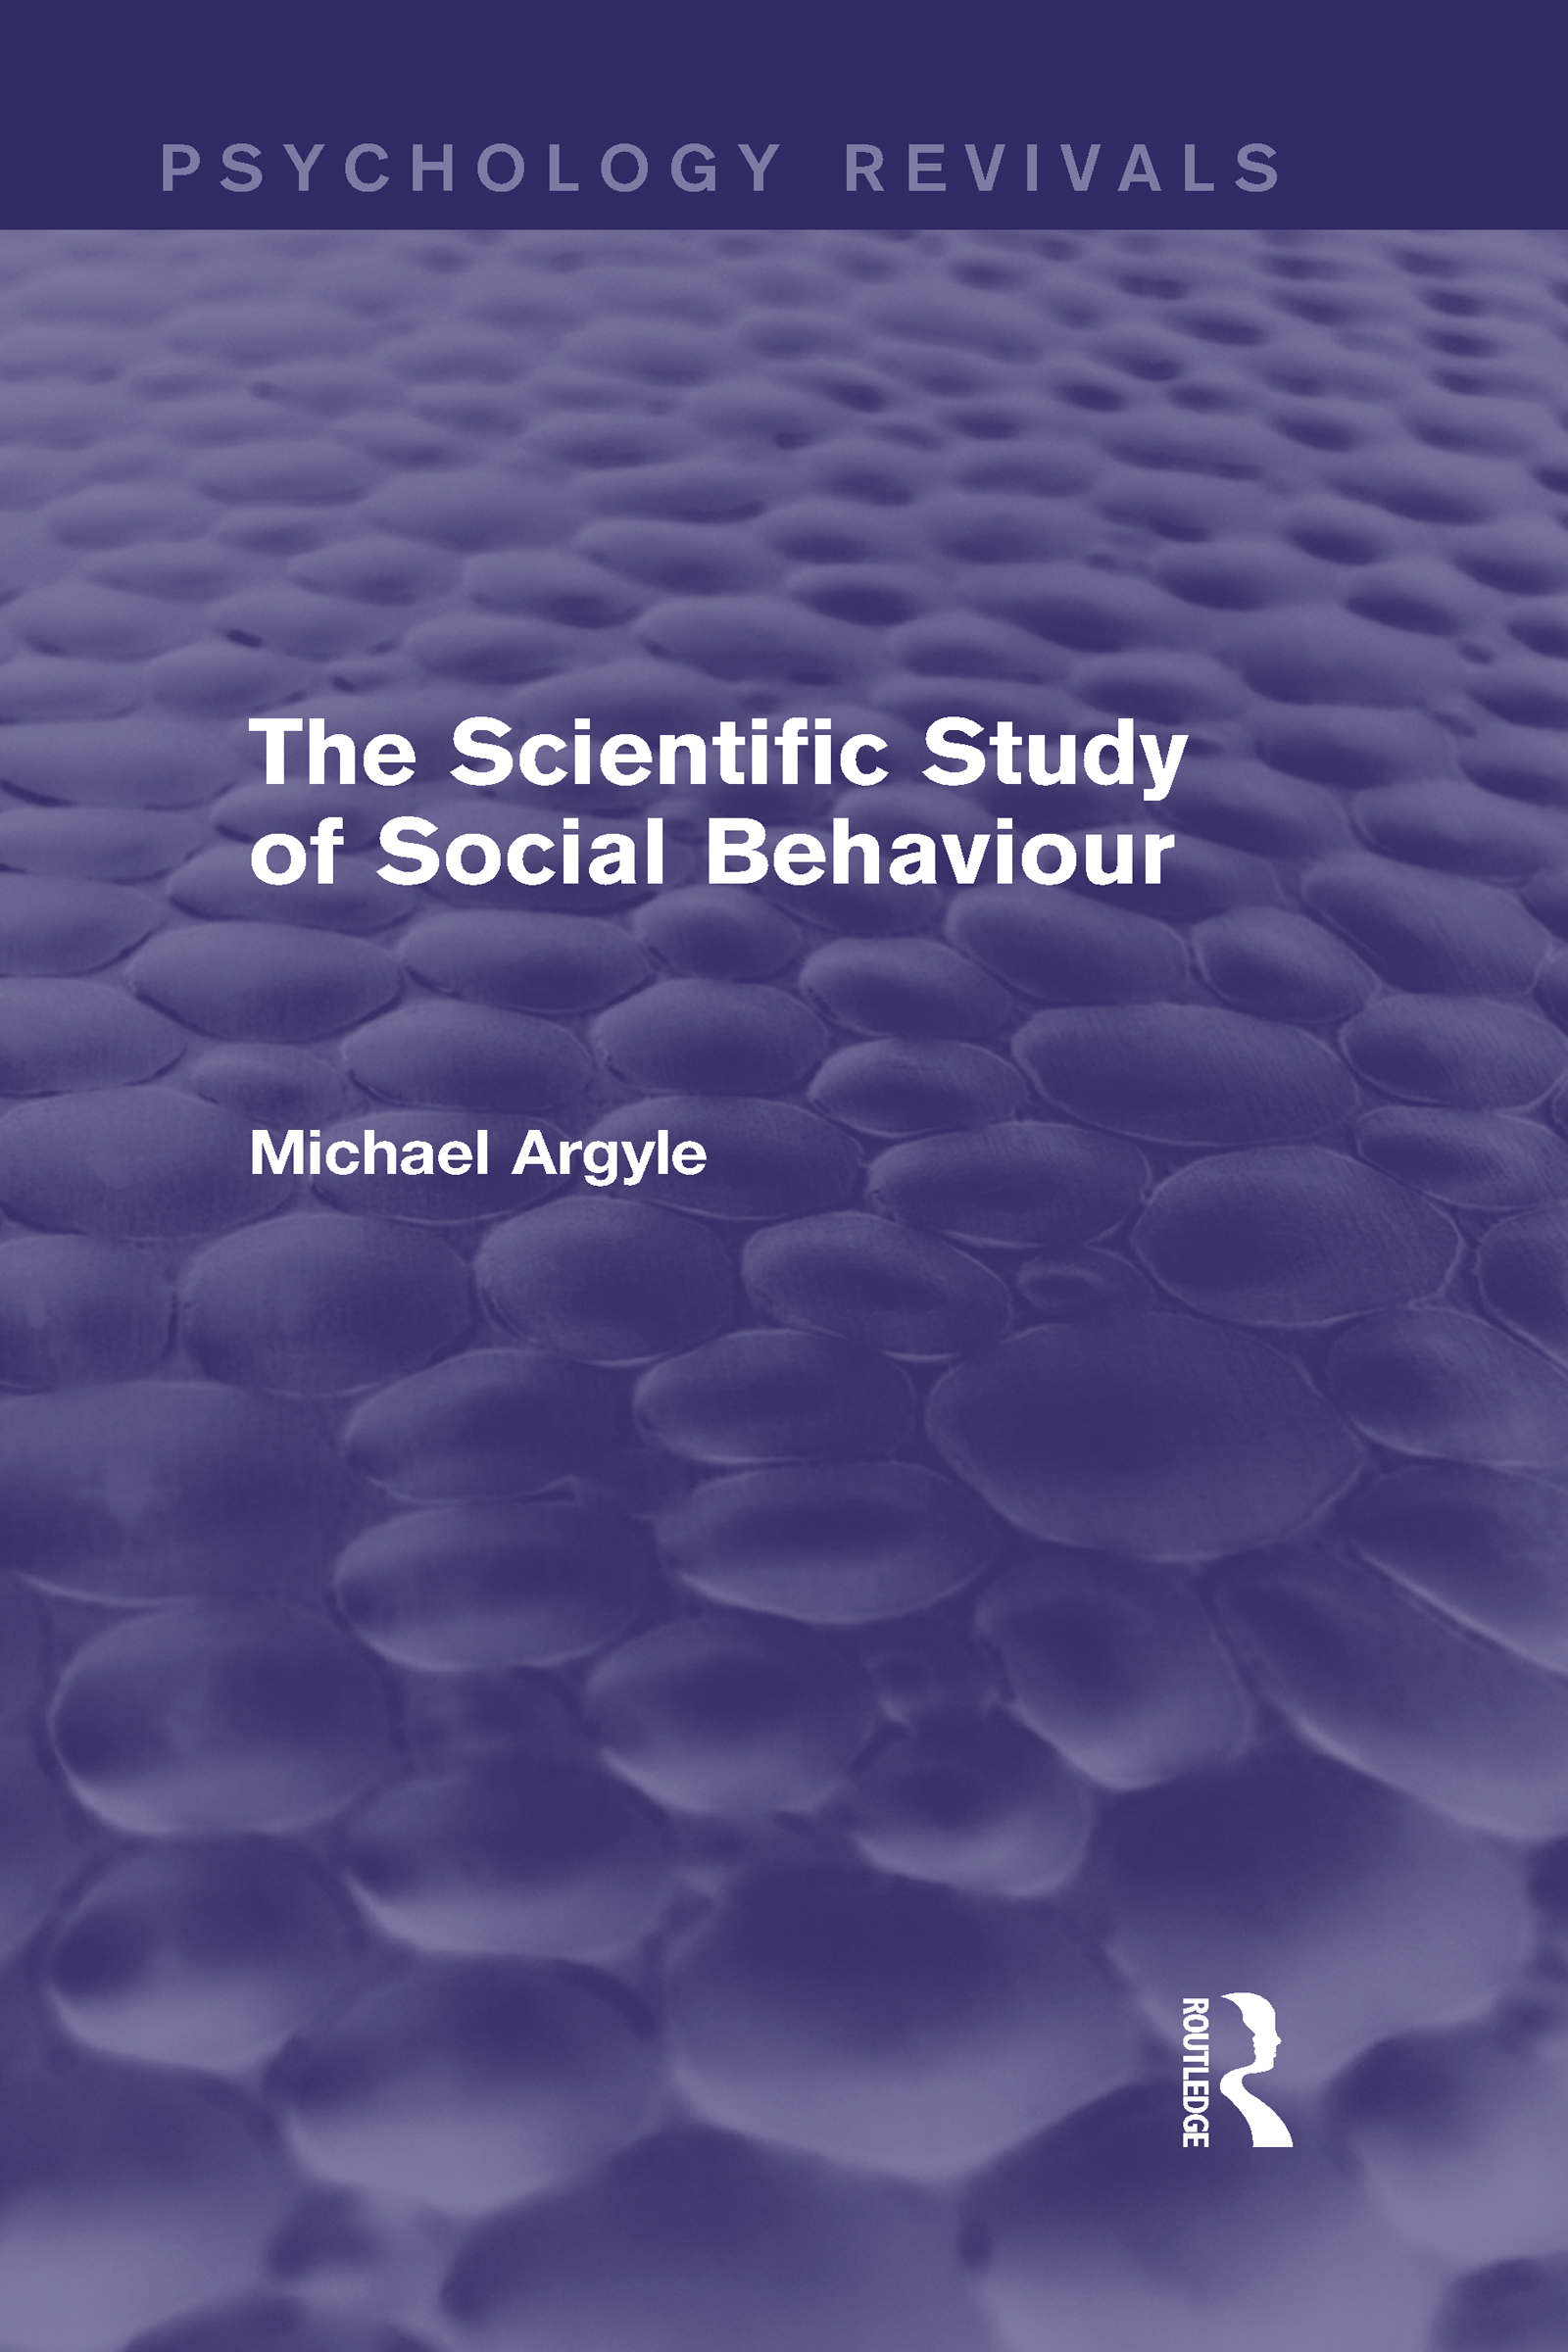 The Scientific Study of Social Behaviour (Psychology Revivals) (Hardback) book cover